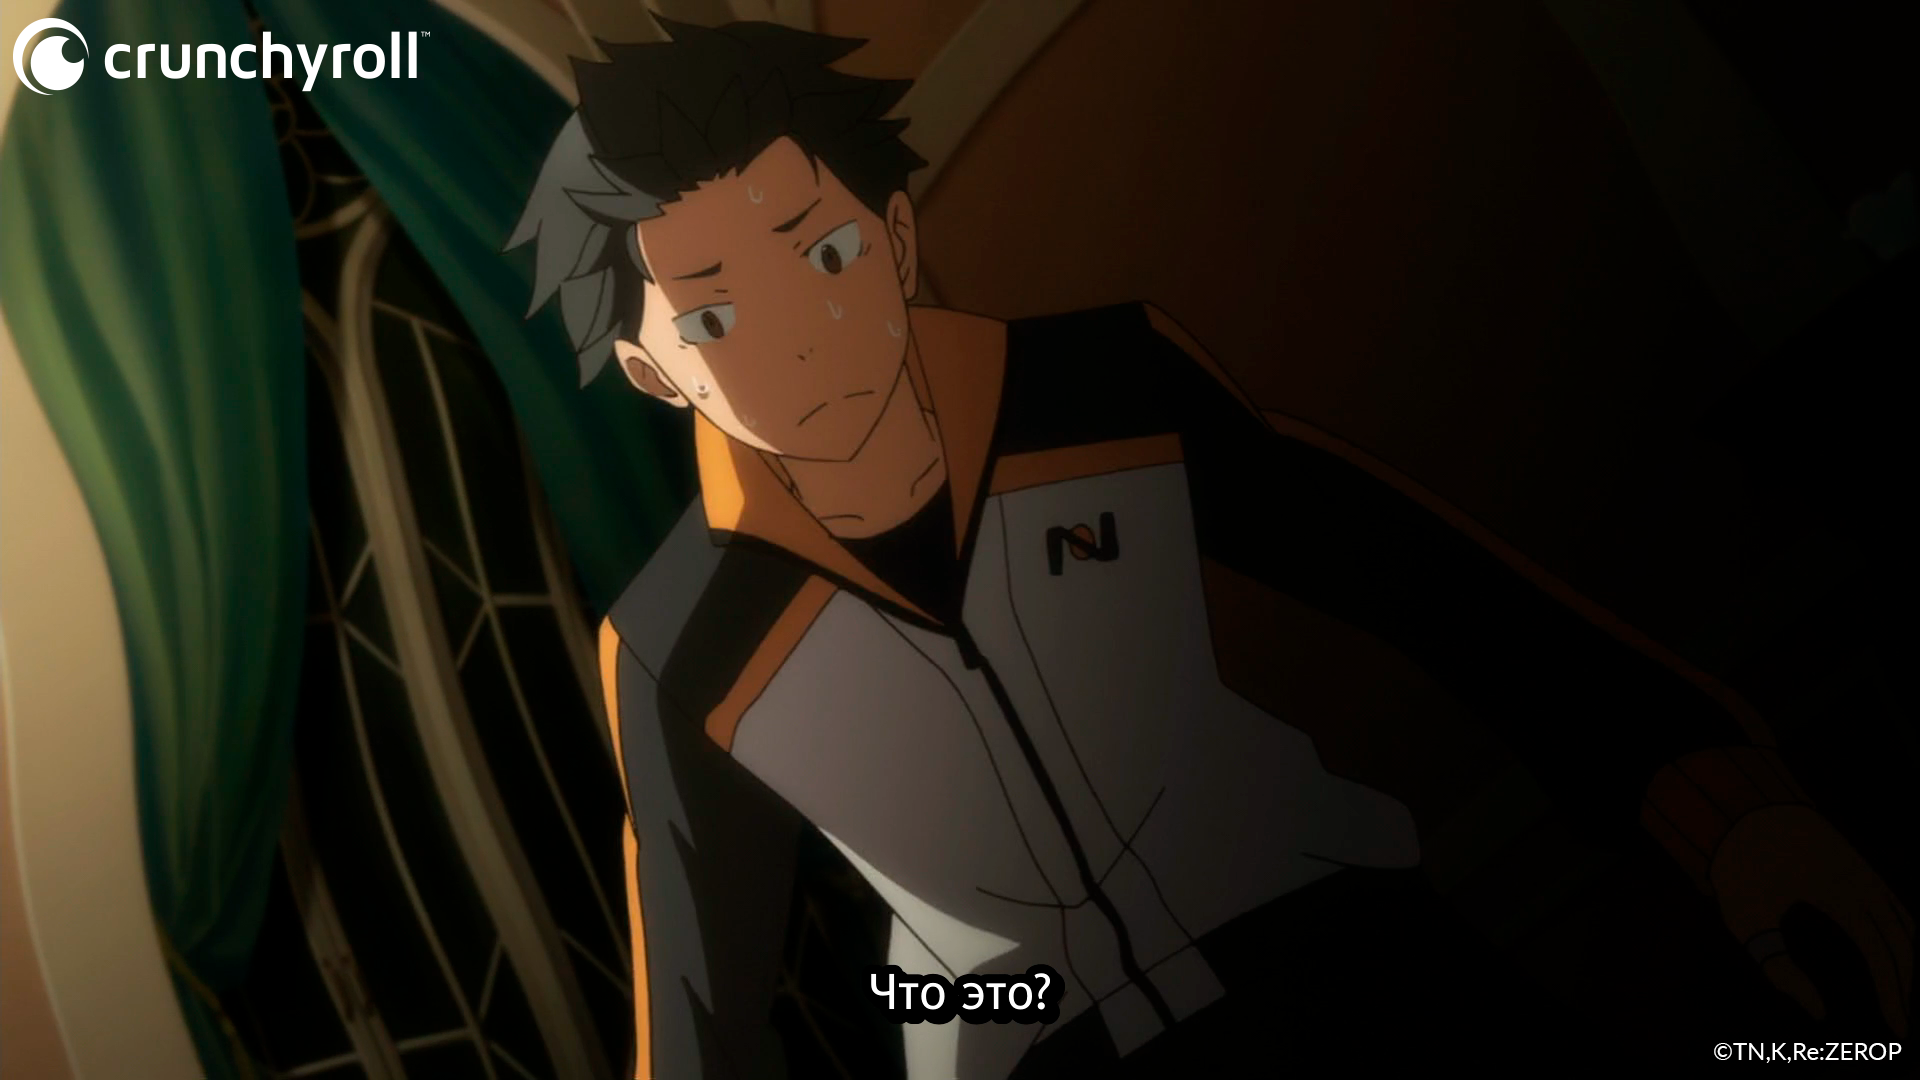 Natsuki Subaru begins to fall victim to a deadly curse in a scene from the Re:ZERO -Starting Life in Another World- TV anime.